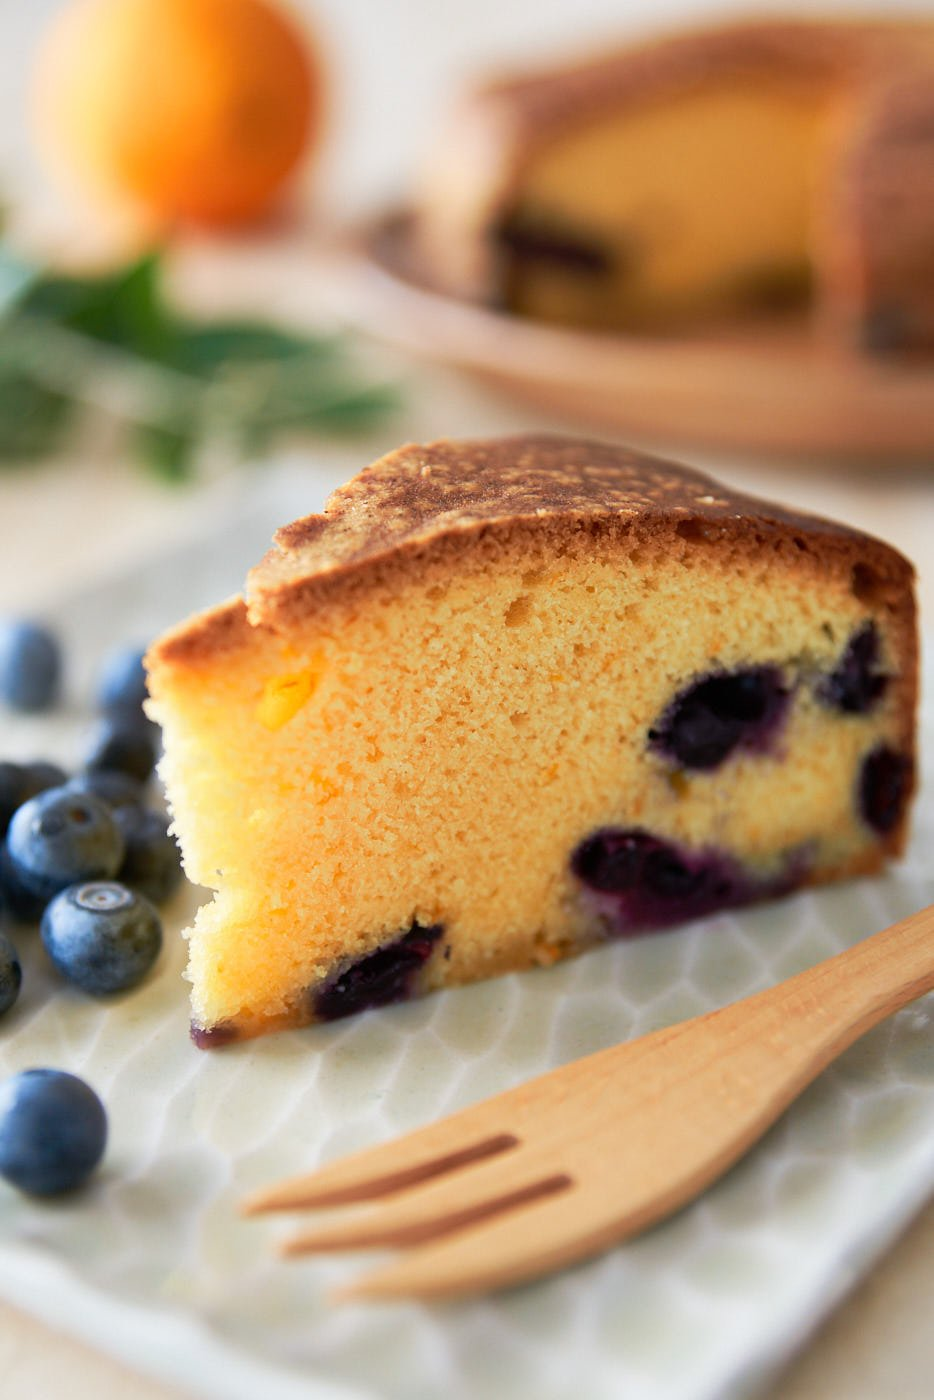 Mouthwatering blueberry olive oil cake recipe with juicy berries in an olive oil and orange infused cake.